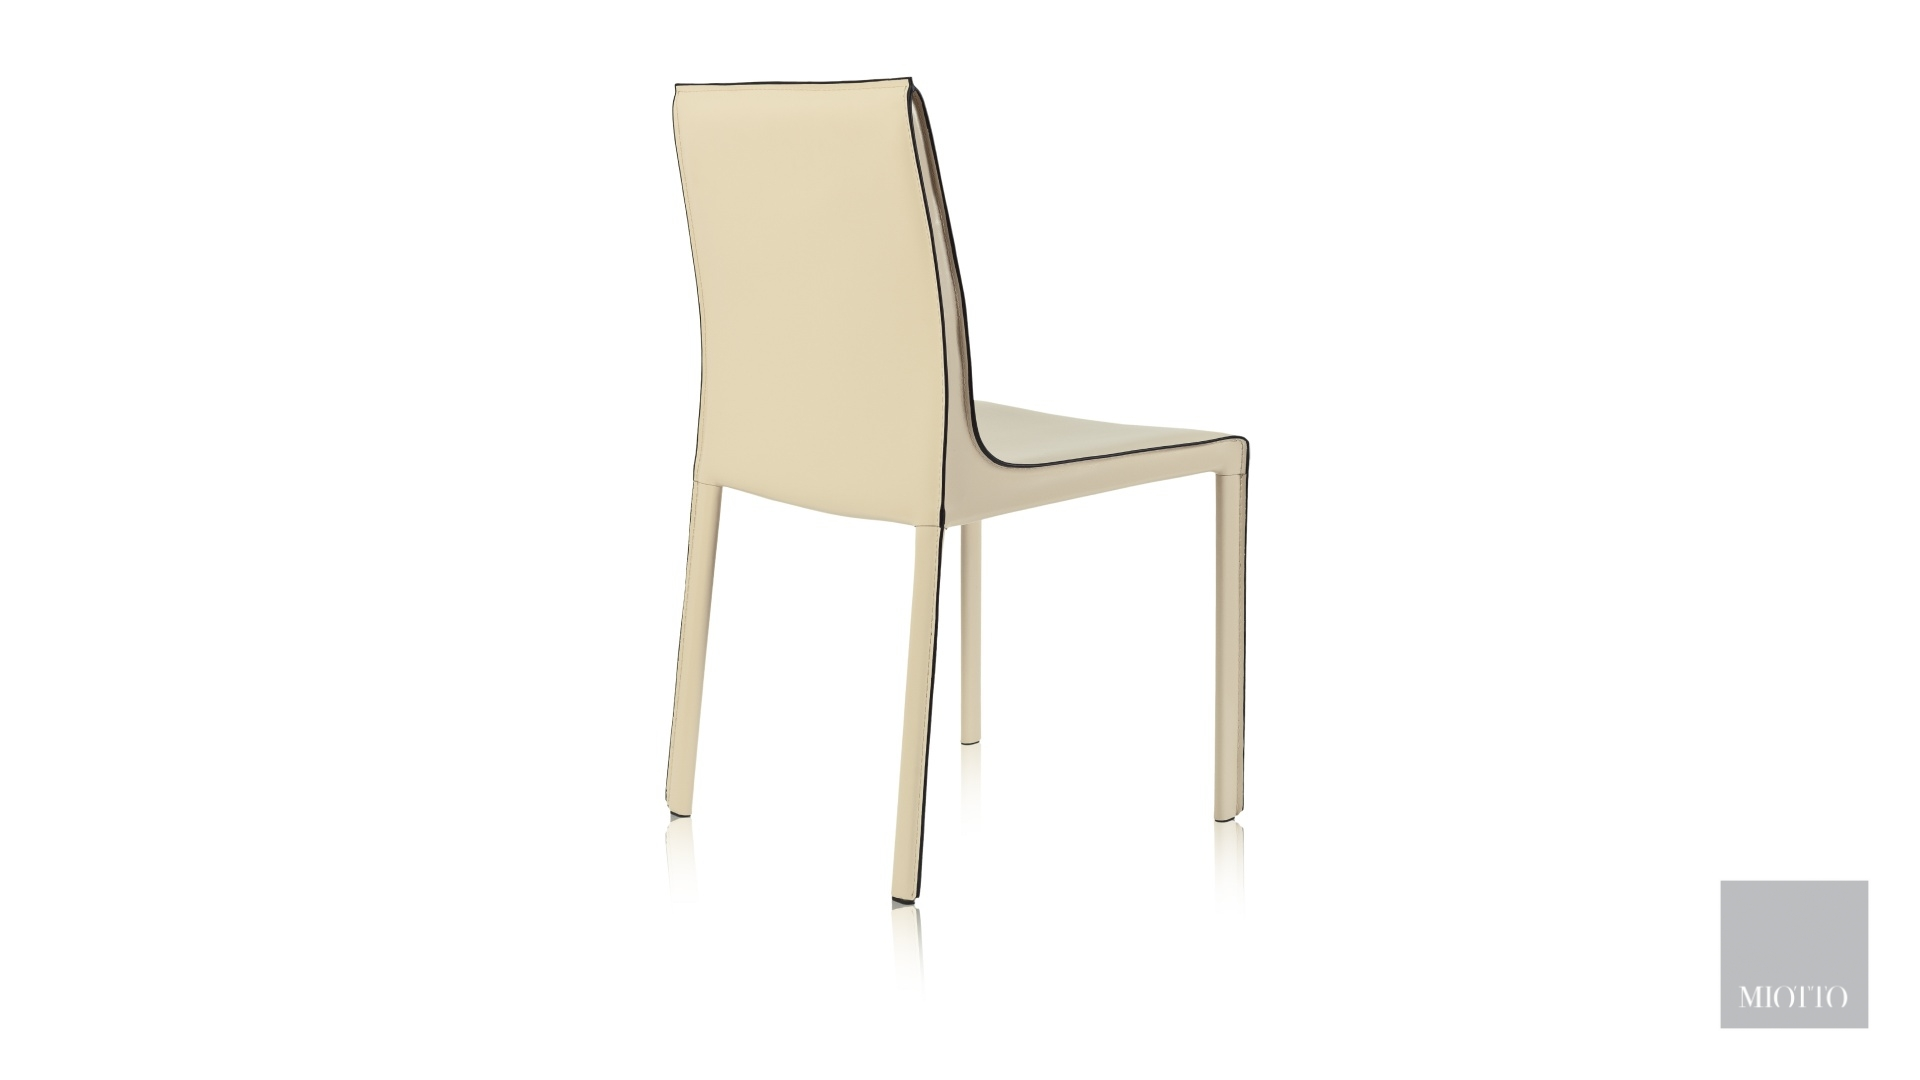 miotto_Ardini dining chair beige back miotto furniture t